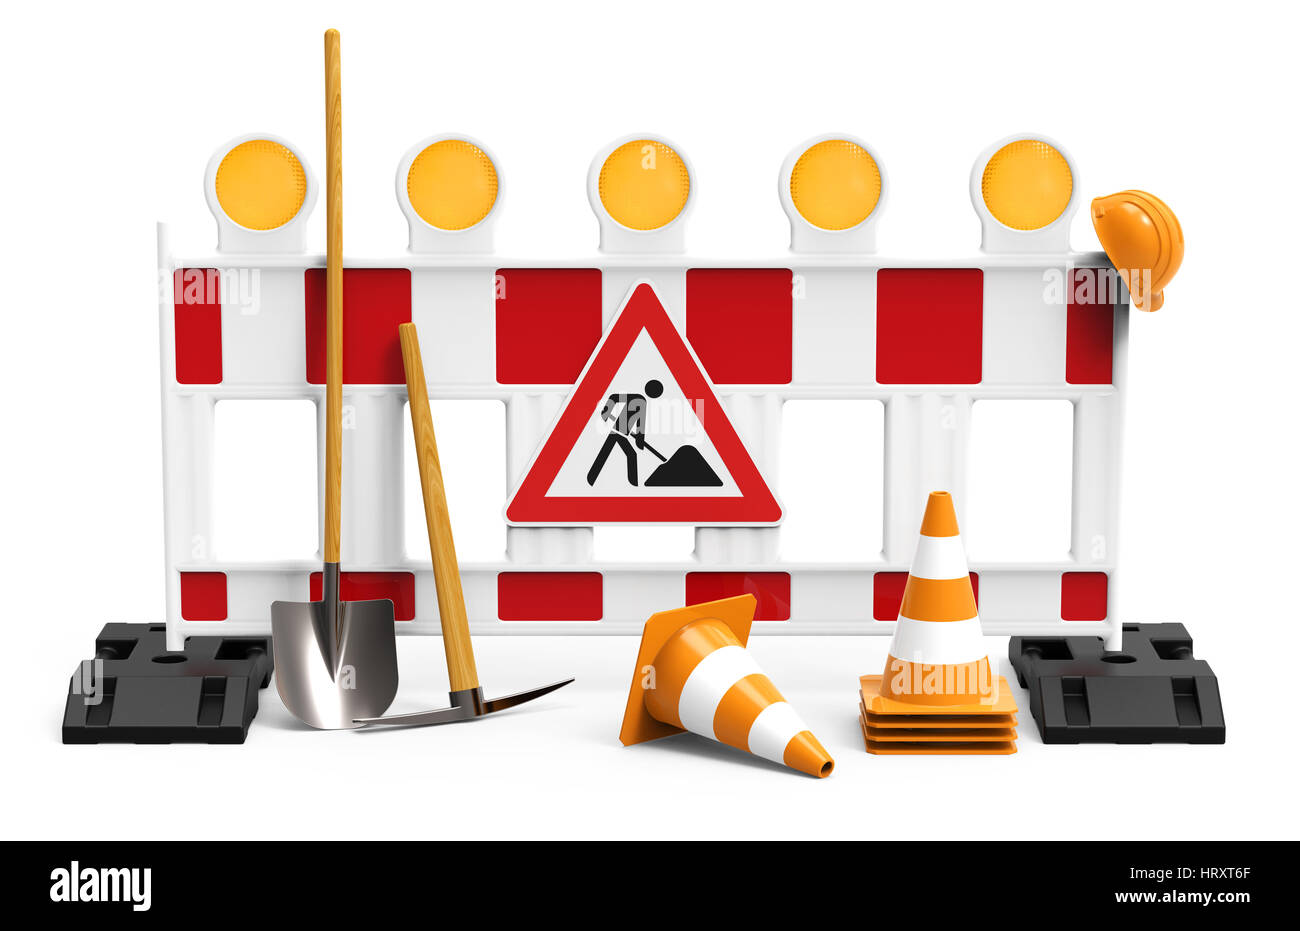 Street barrier with shovel, traffic sign, traffic cone and safety helmet, isolated on white background 3D rendering Stock Photo